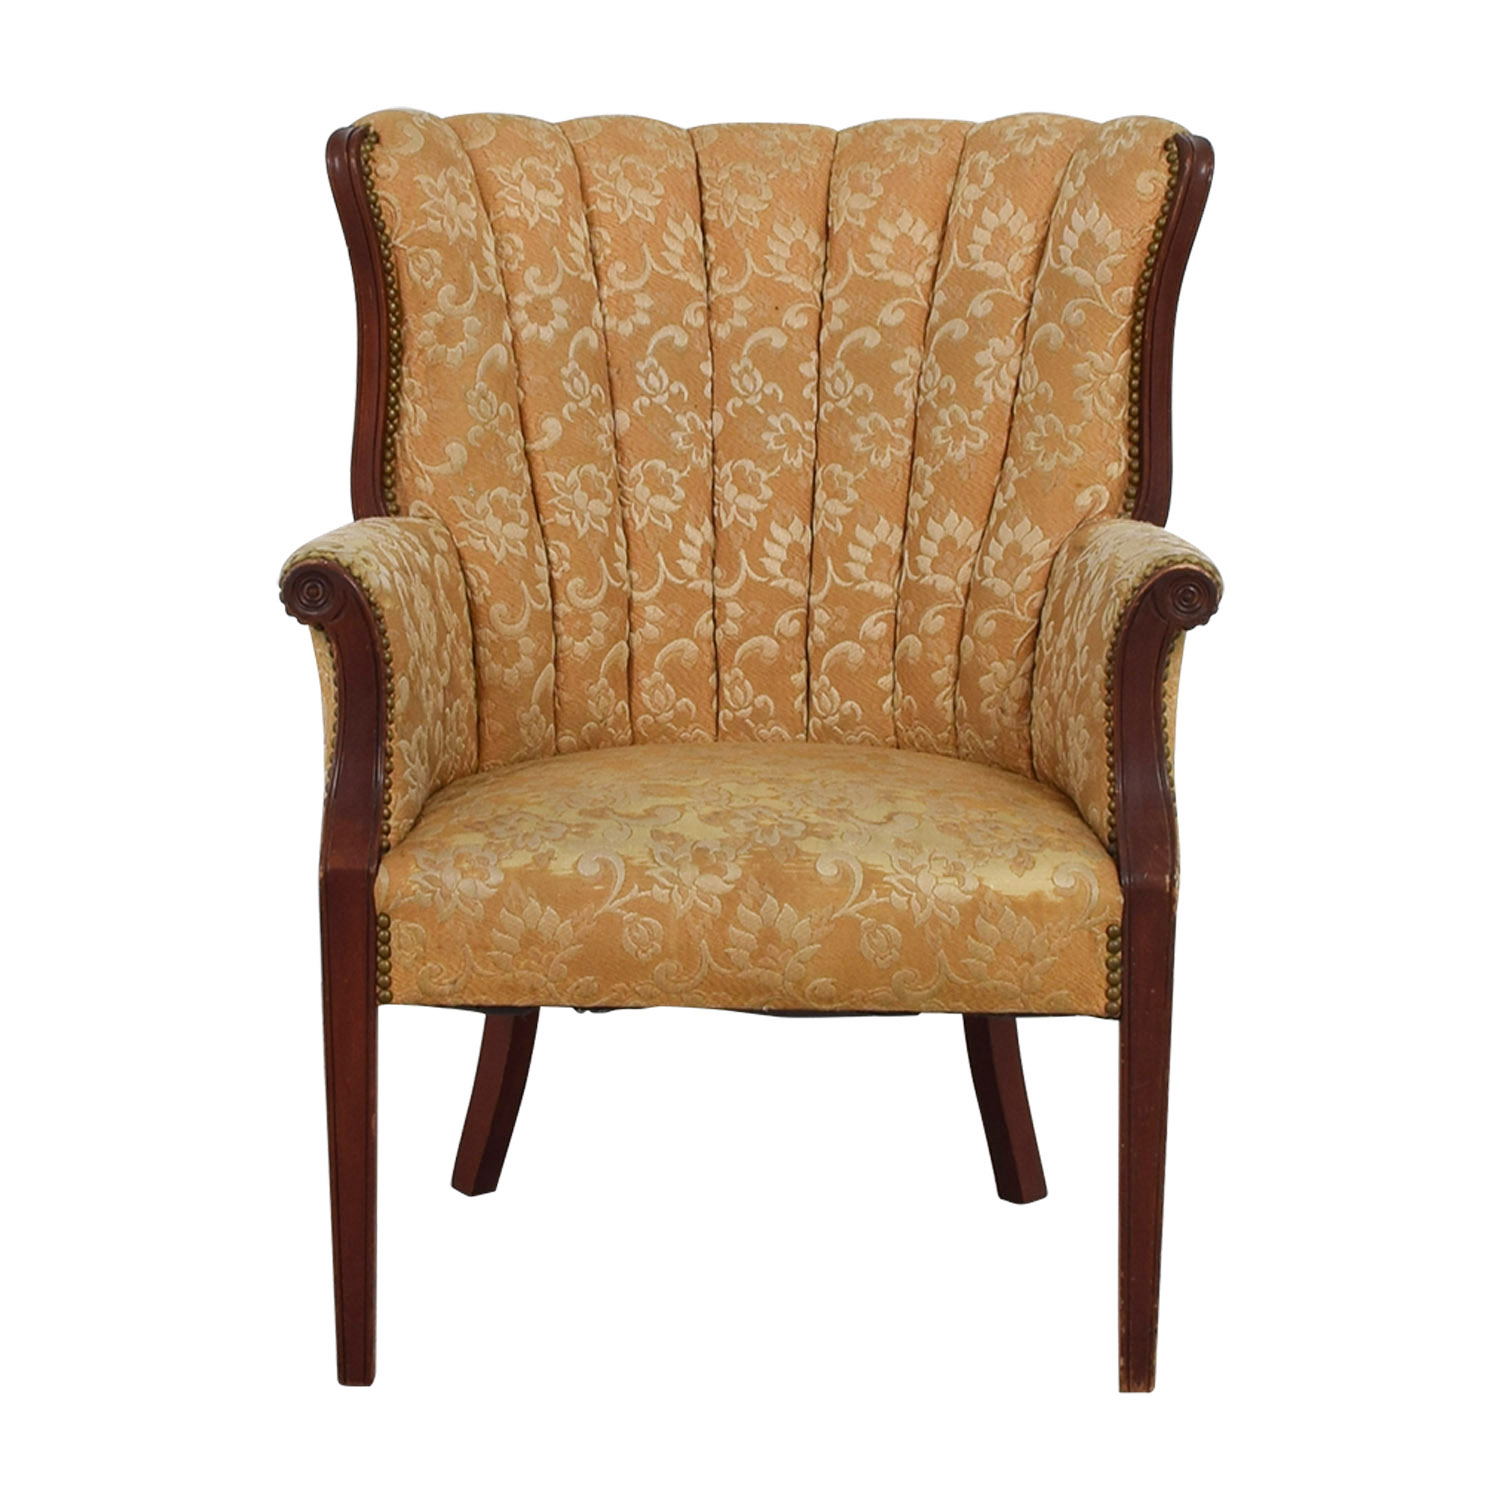 Antique Accent Chairs 87 Off Antique Indigo Yellow Wingback Accent Chair Chairs